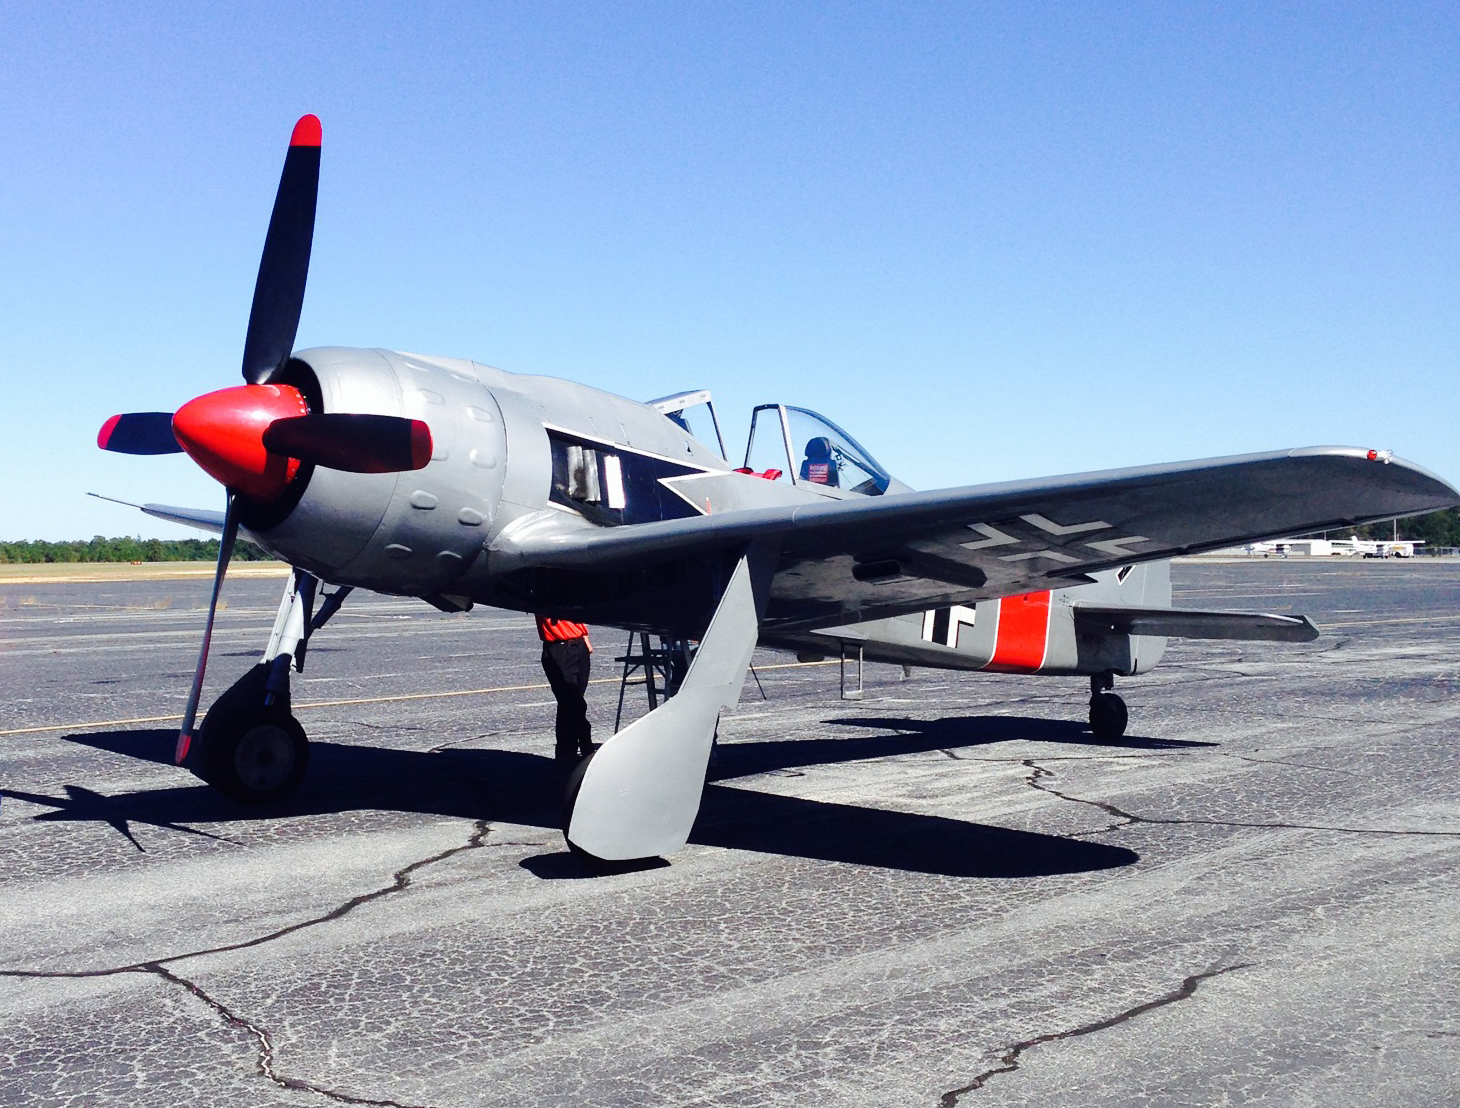 The Military Aviation Museum's latest acquisition, a Flugwerk FW-190A8/N. (photo via Mike Spalding)